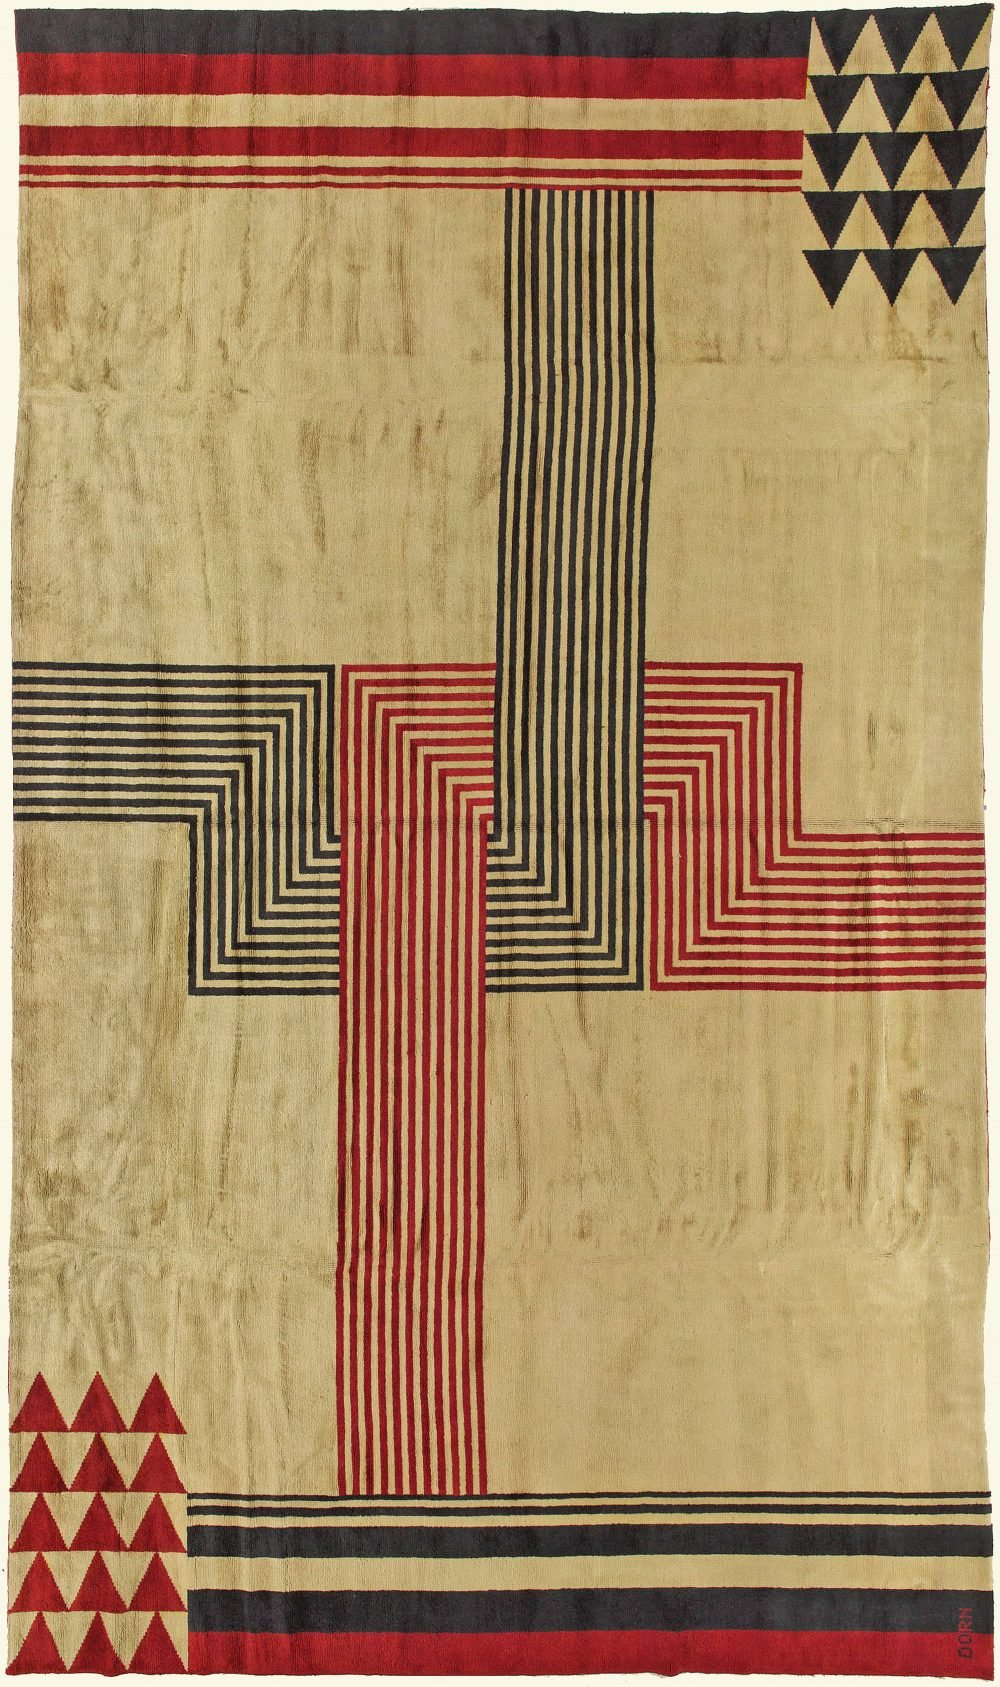 French Deco Rug by Marion Dorn BB6042